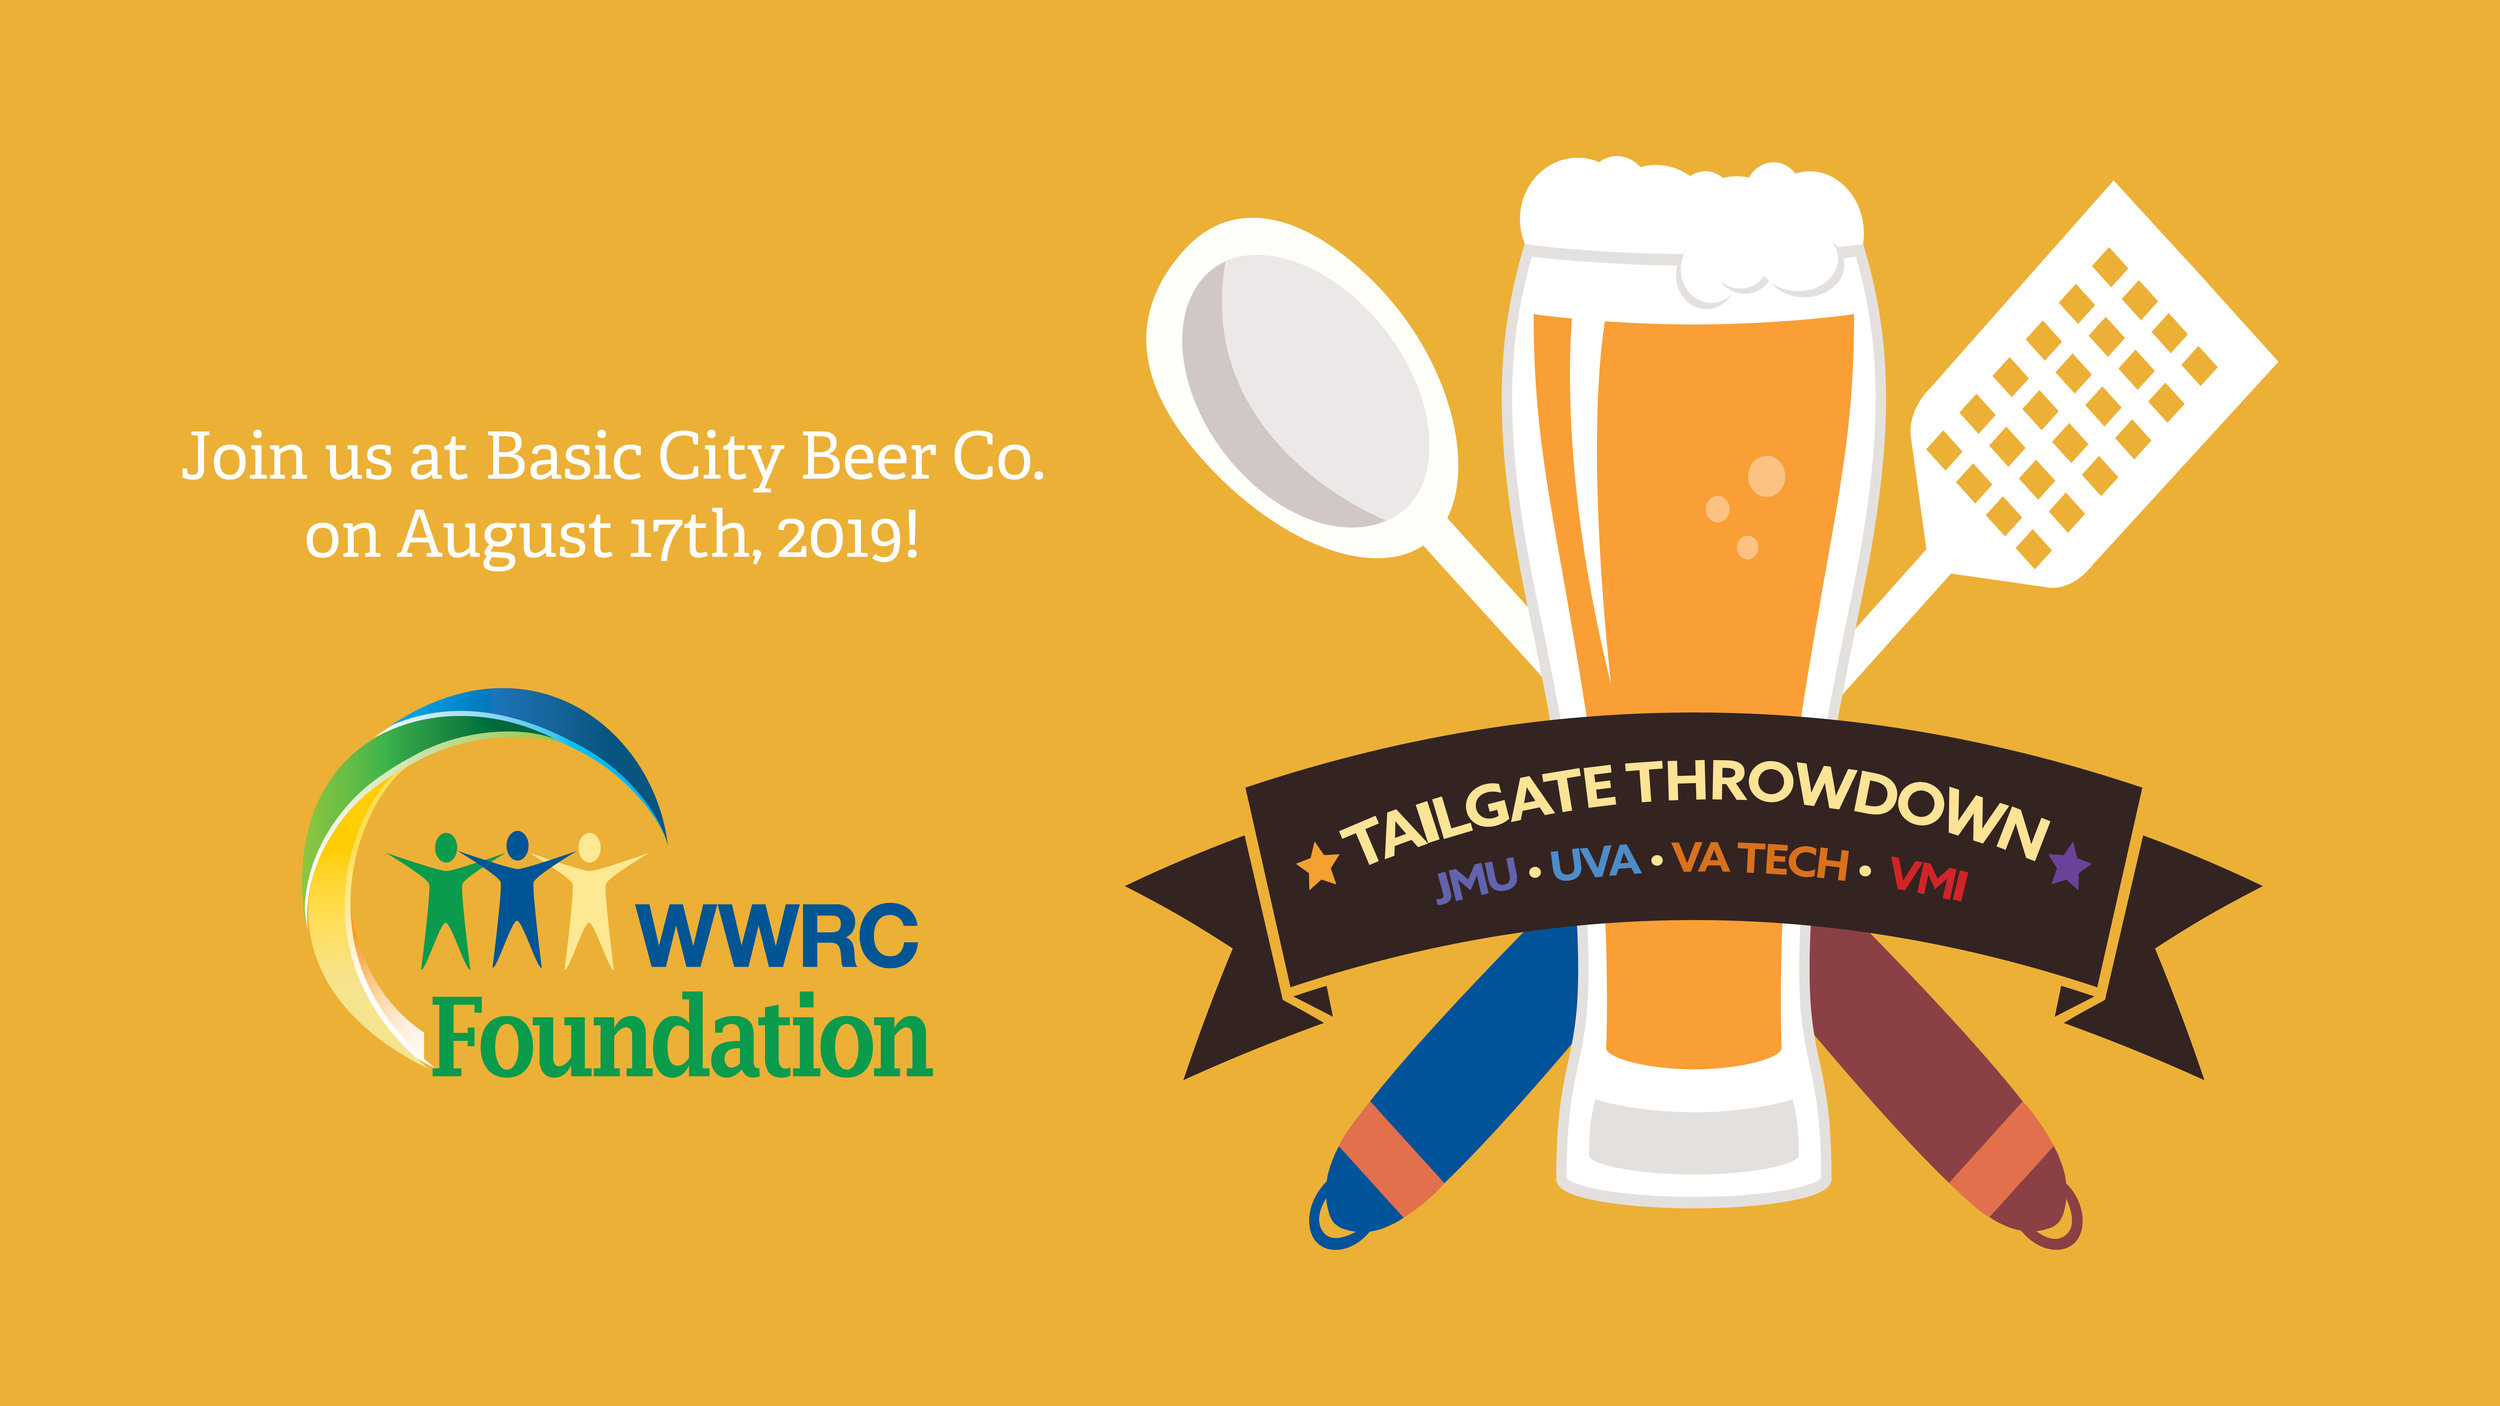 WWRCF Tailgate Throwdown Event Page.jpg